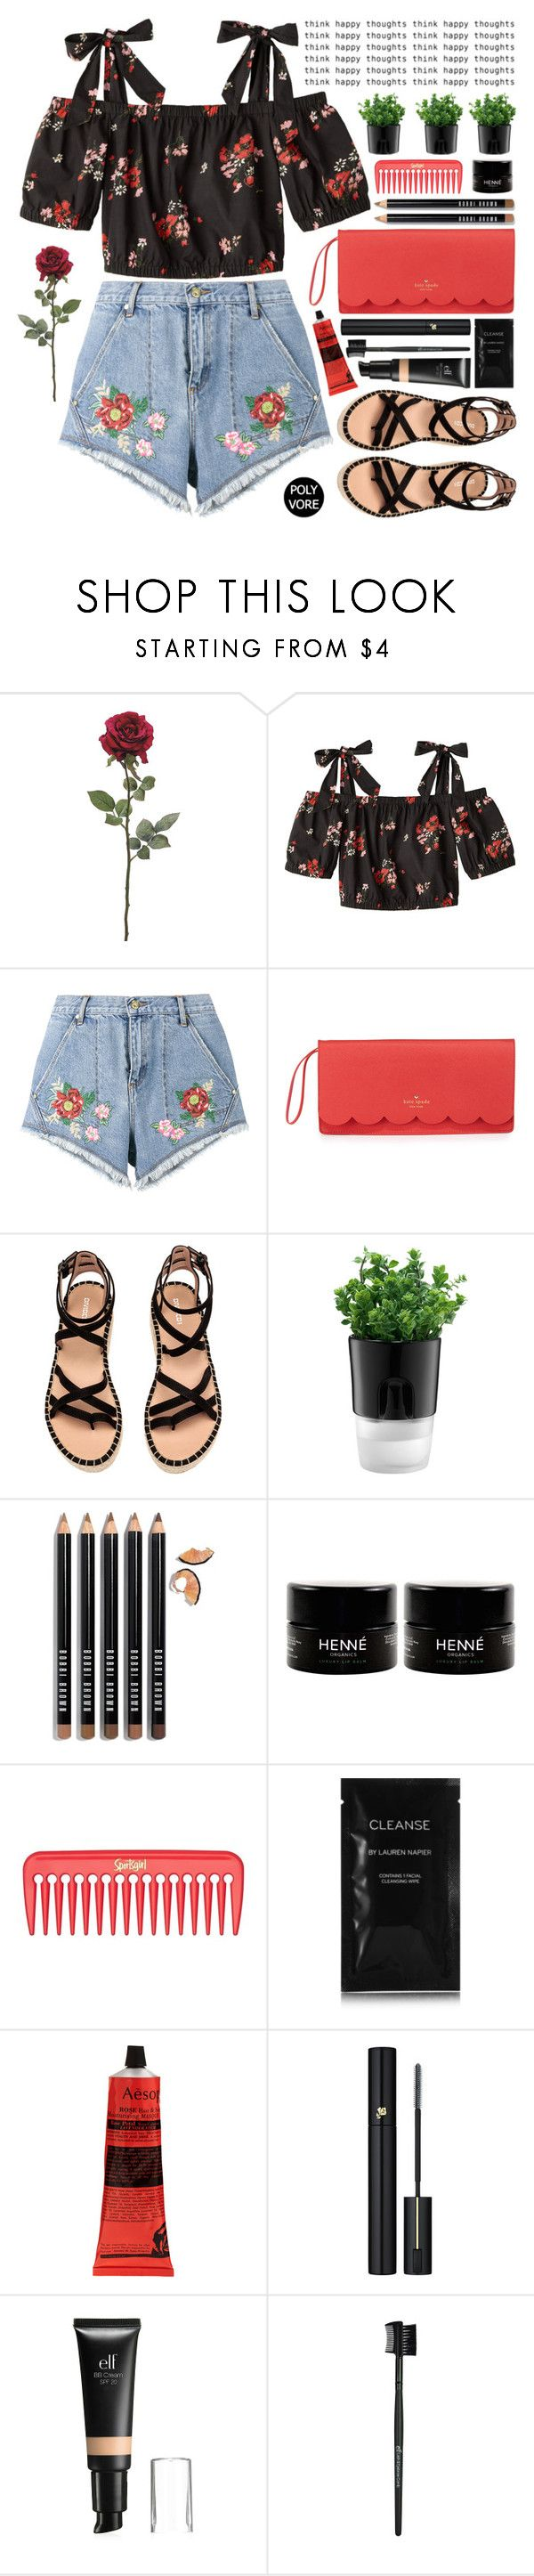 """Woke Up Feeling Great!"" by stavrolga on Polyvore featuring House of Holland, Kate Spade, Bodum, Bobbi Brown Cosmetics, Cleanse by Lauren Napier, Aesop, Lancôme and e.l.f."